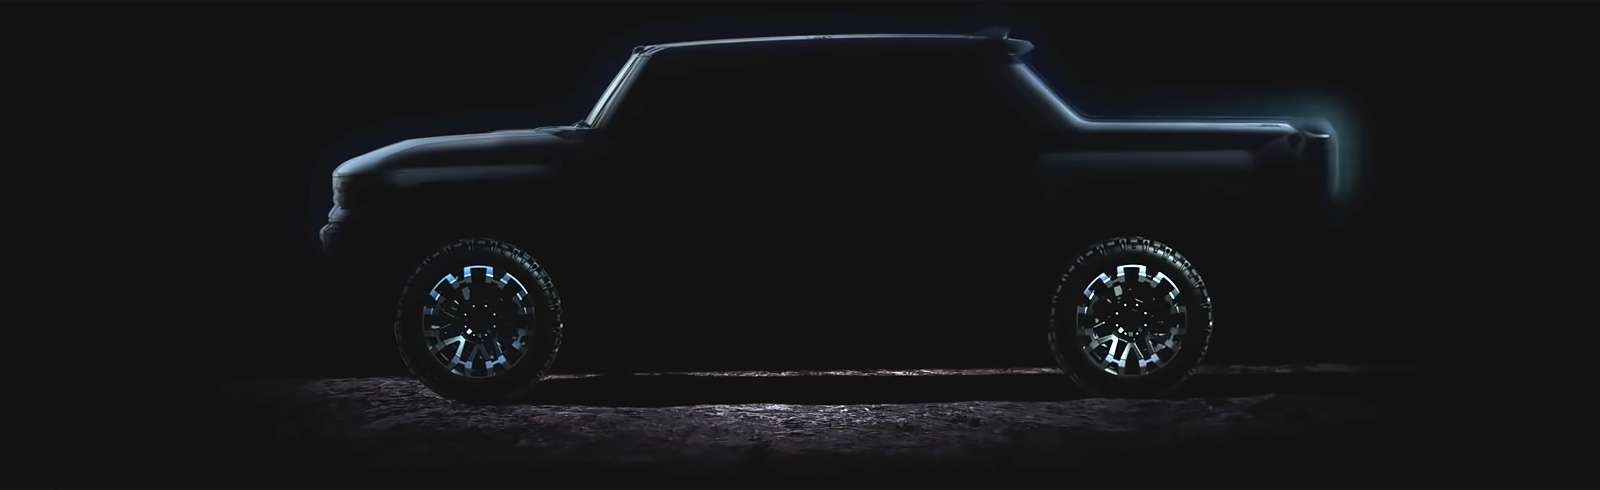 GM will introduce the GMC Hummer EV this autumn, releases a teaser video